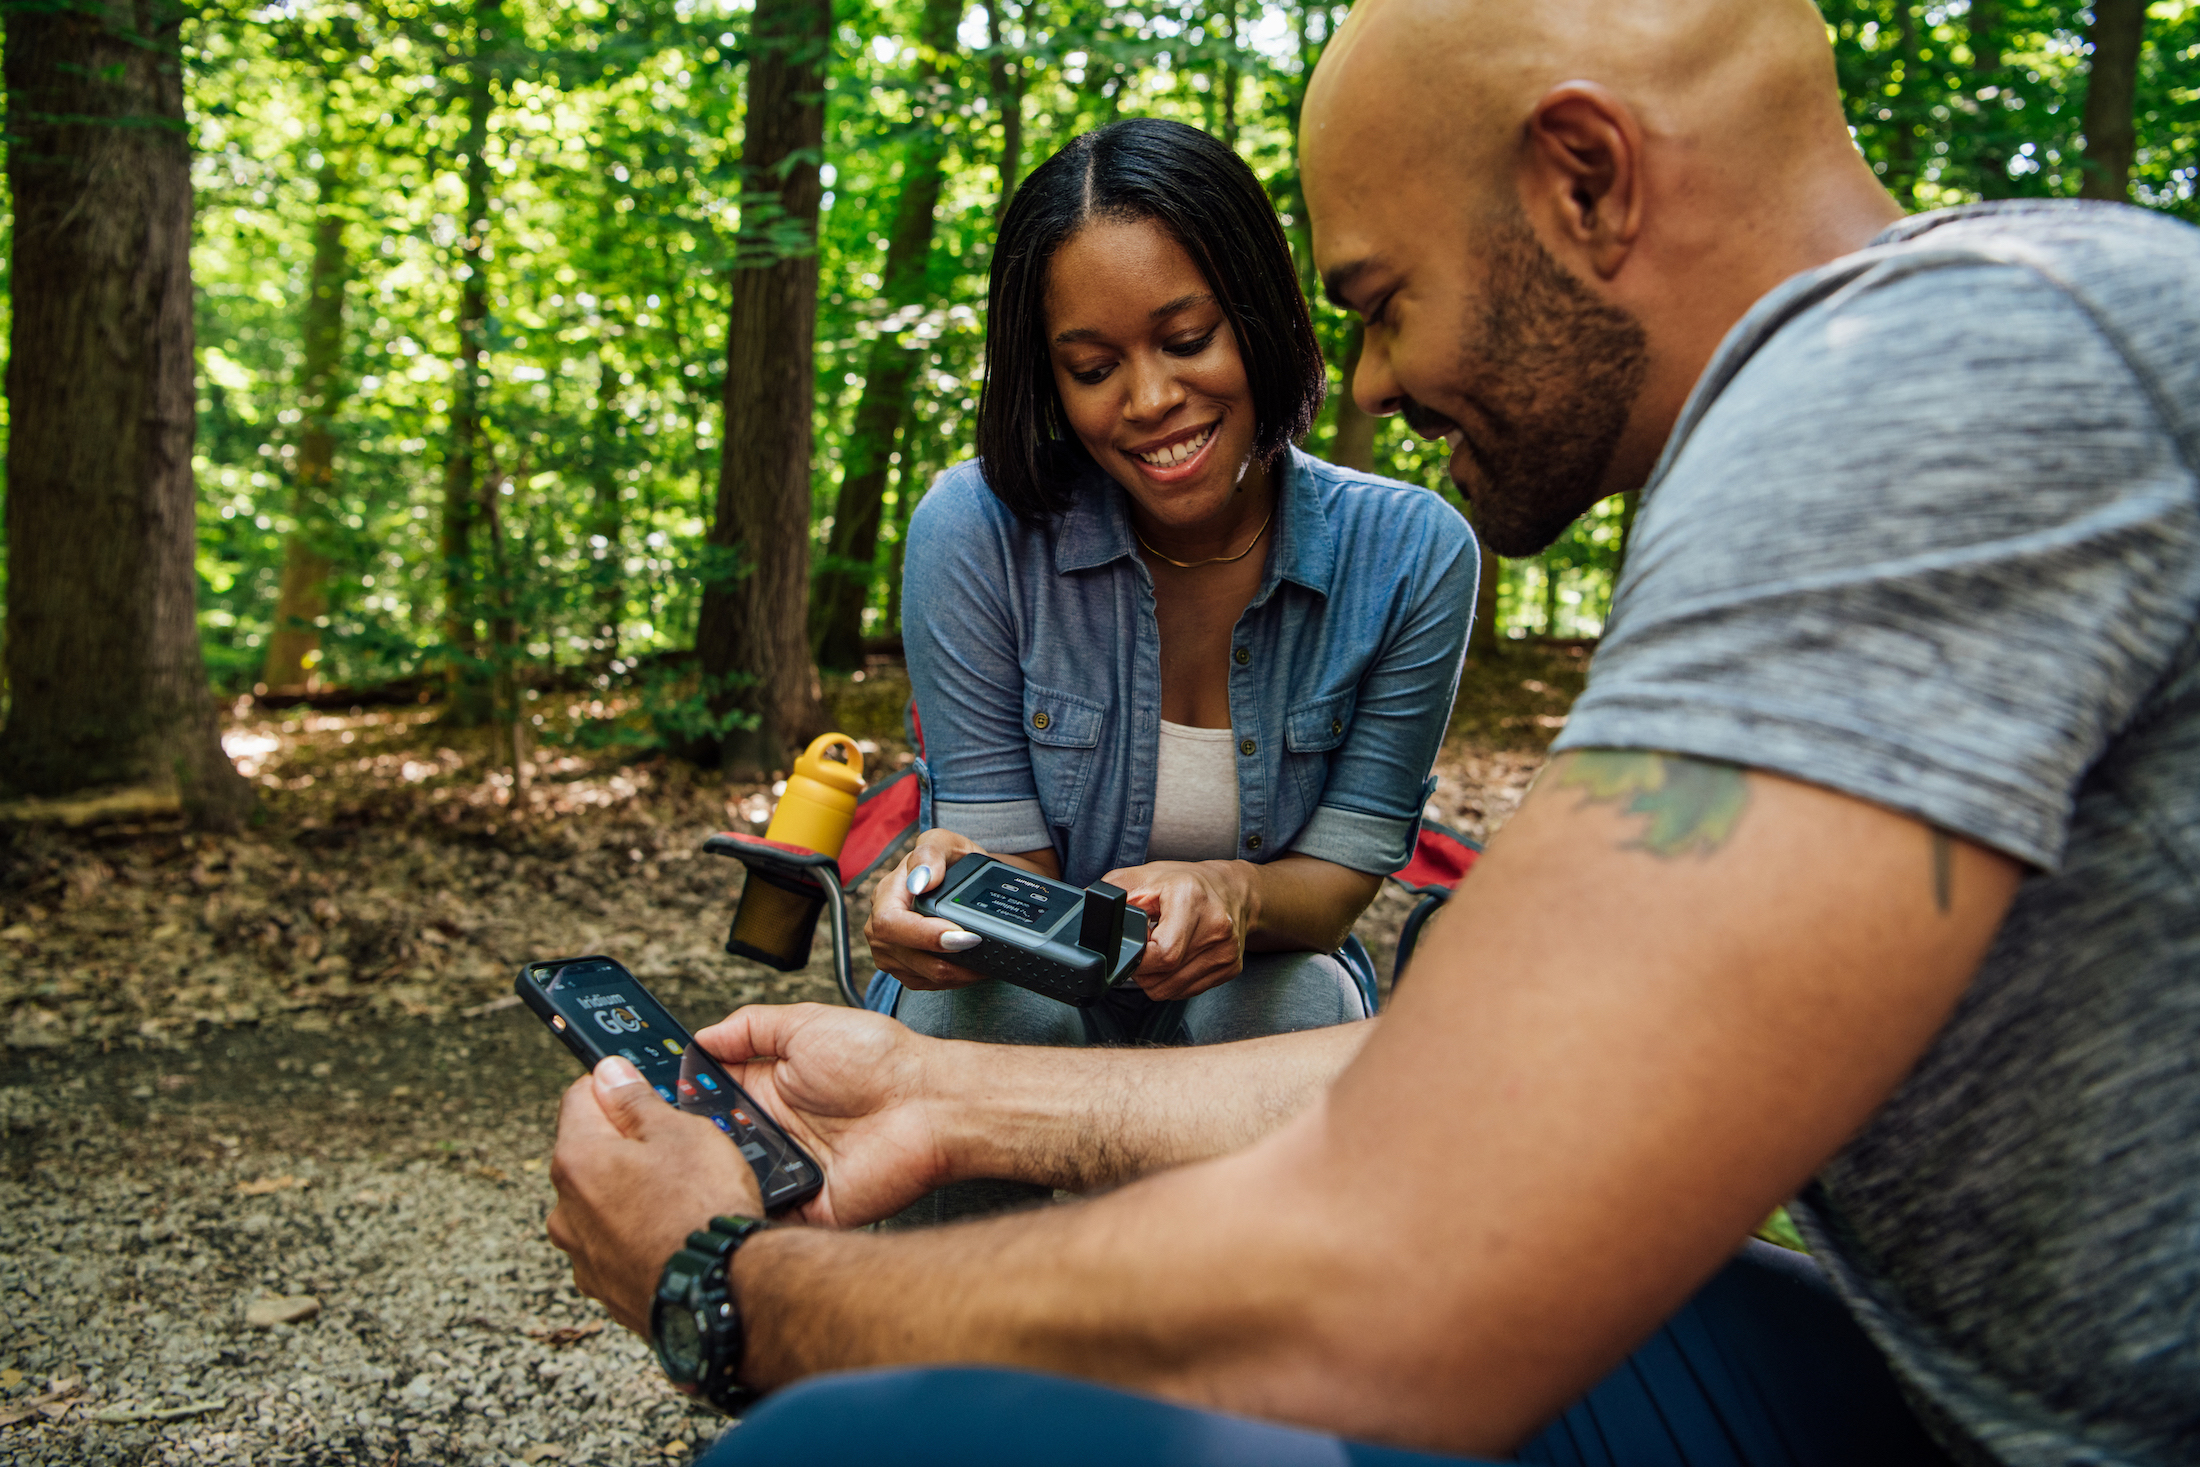 Couple smiling at a campsite in the forest using an Iridium phone